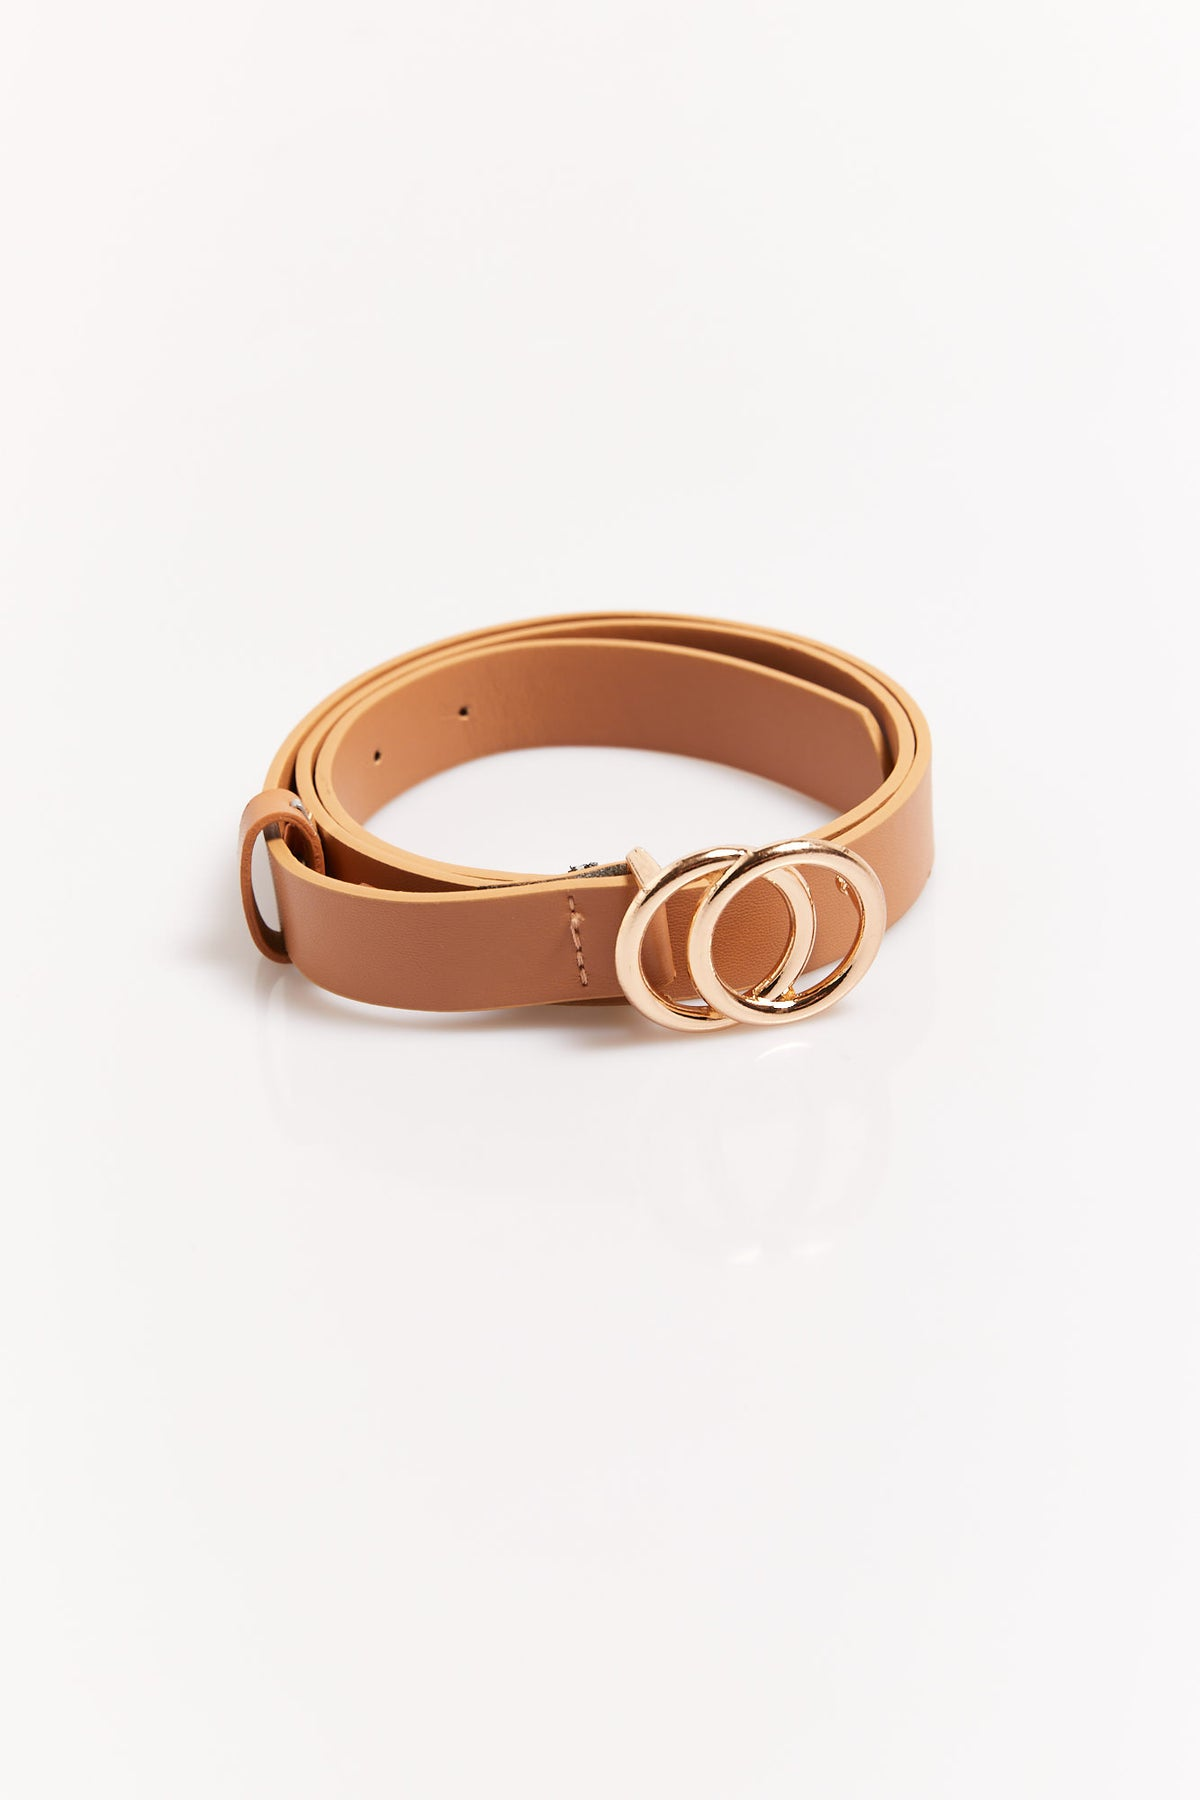 Mini Circle Belt Tan/Gold